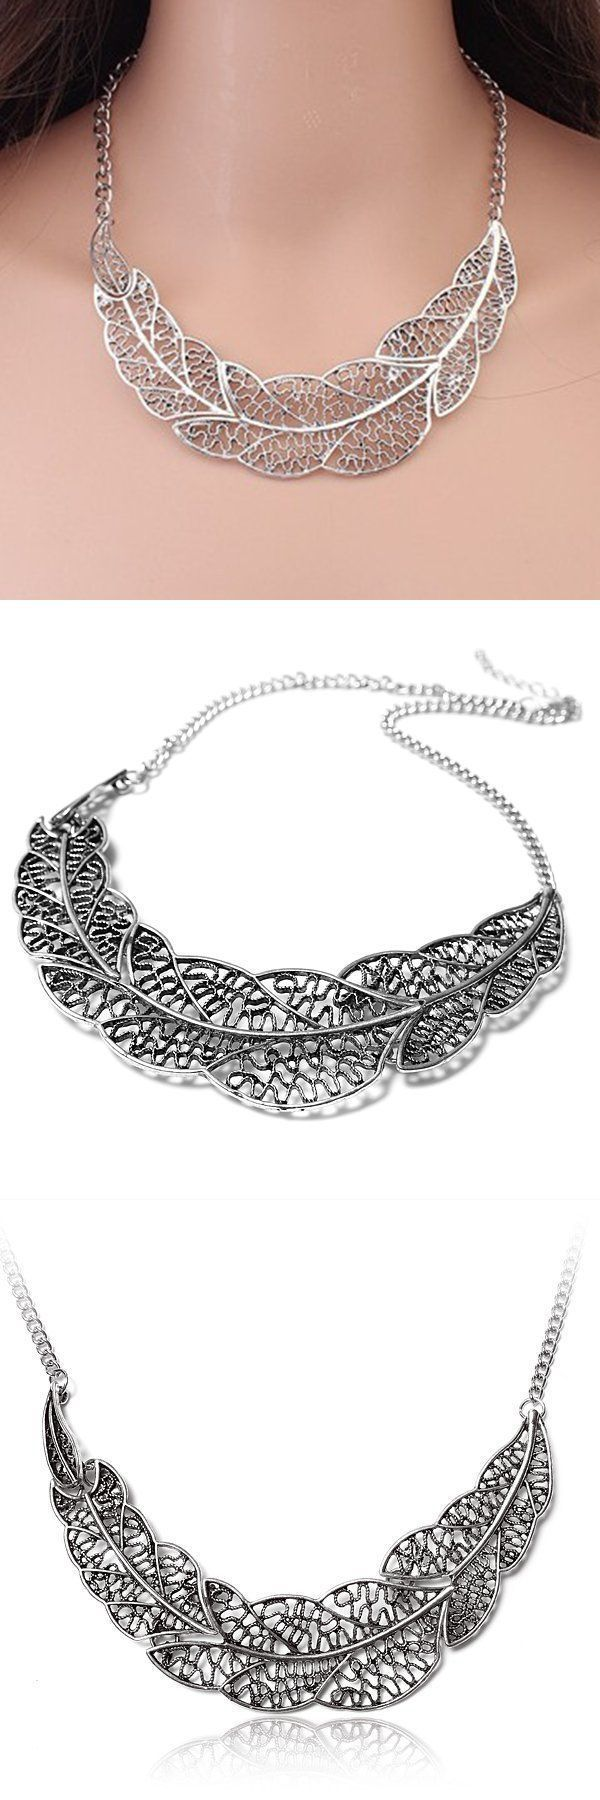 Necklaces with key pendants vintage silver hollow leaf statement necklaces with key pendants vintage silver hollow leaf statement collar chain pendant necklace inspirational aloadofball Choice Image